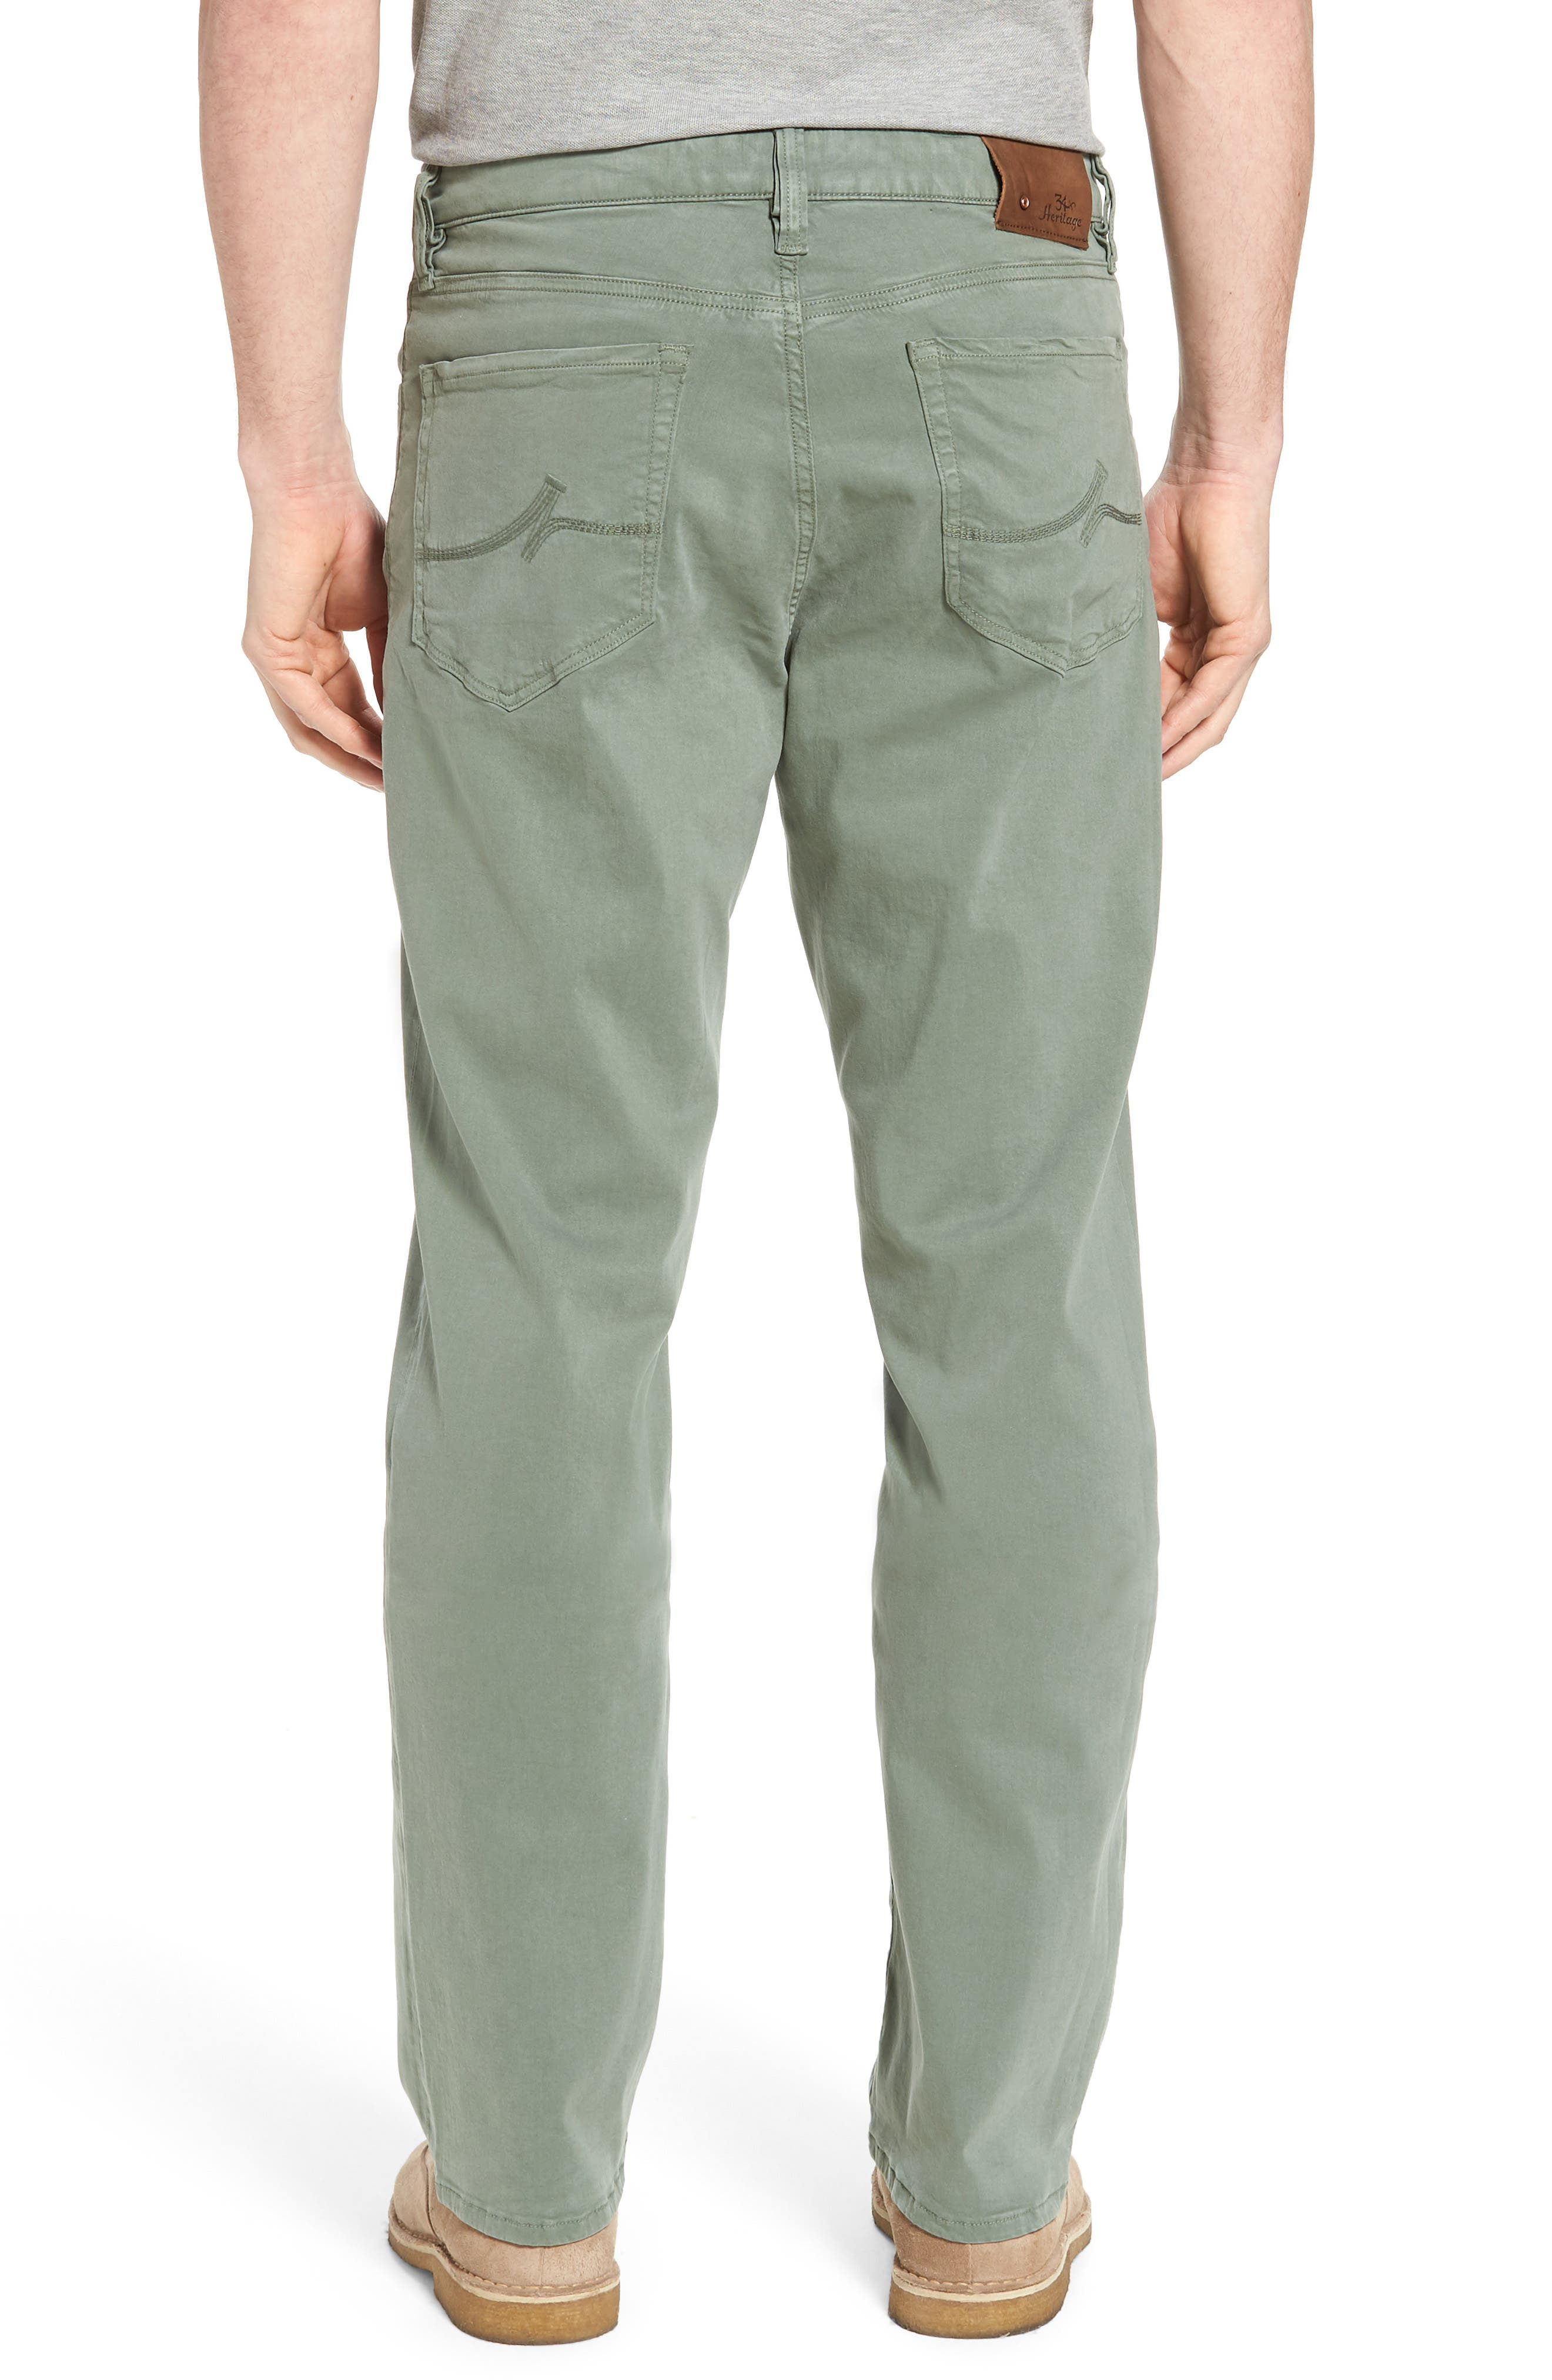 34 HERITAGE,                             Charisma Relaxed Fit Twill Pants,                             Alternate thumbnail 2, color,                             MOSS TWILL